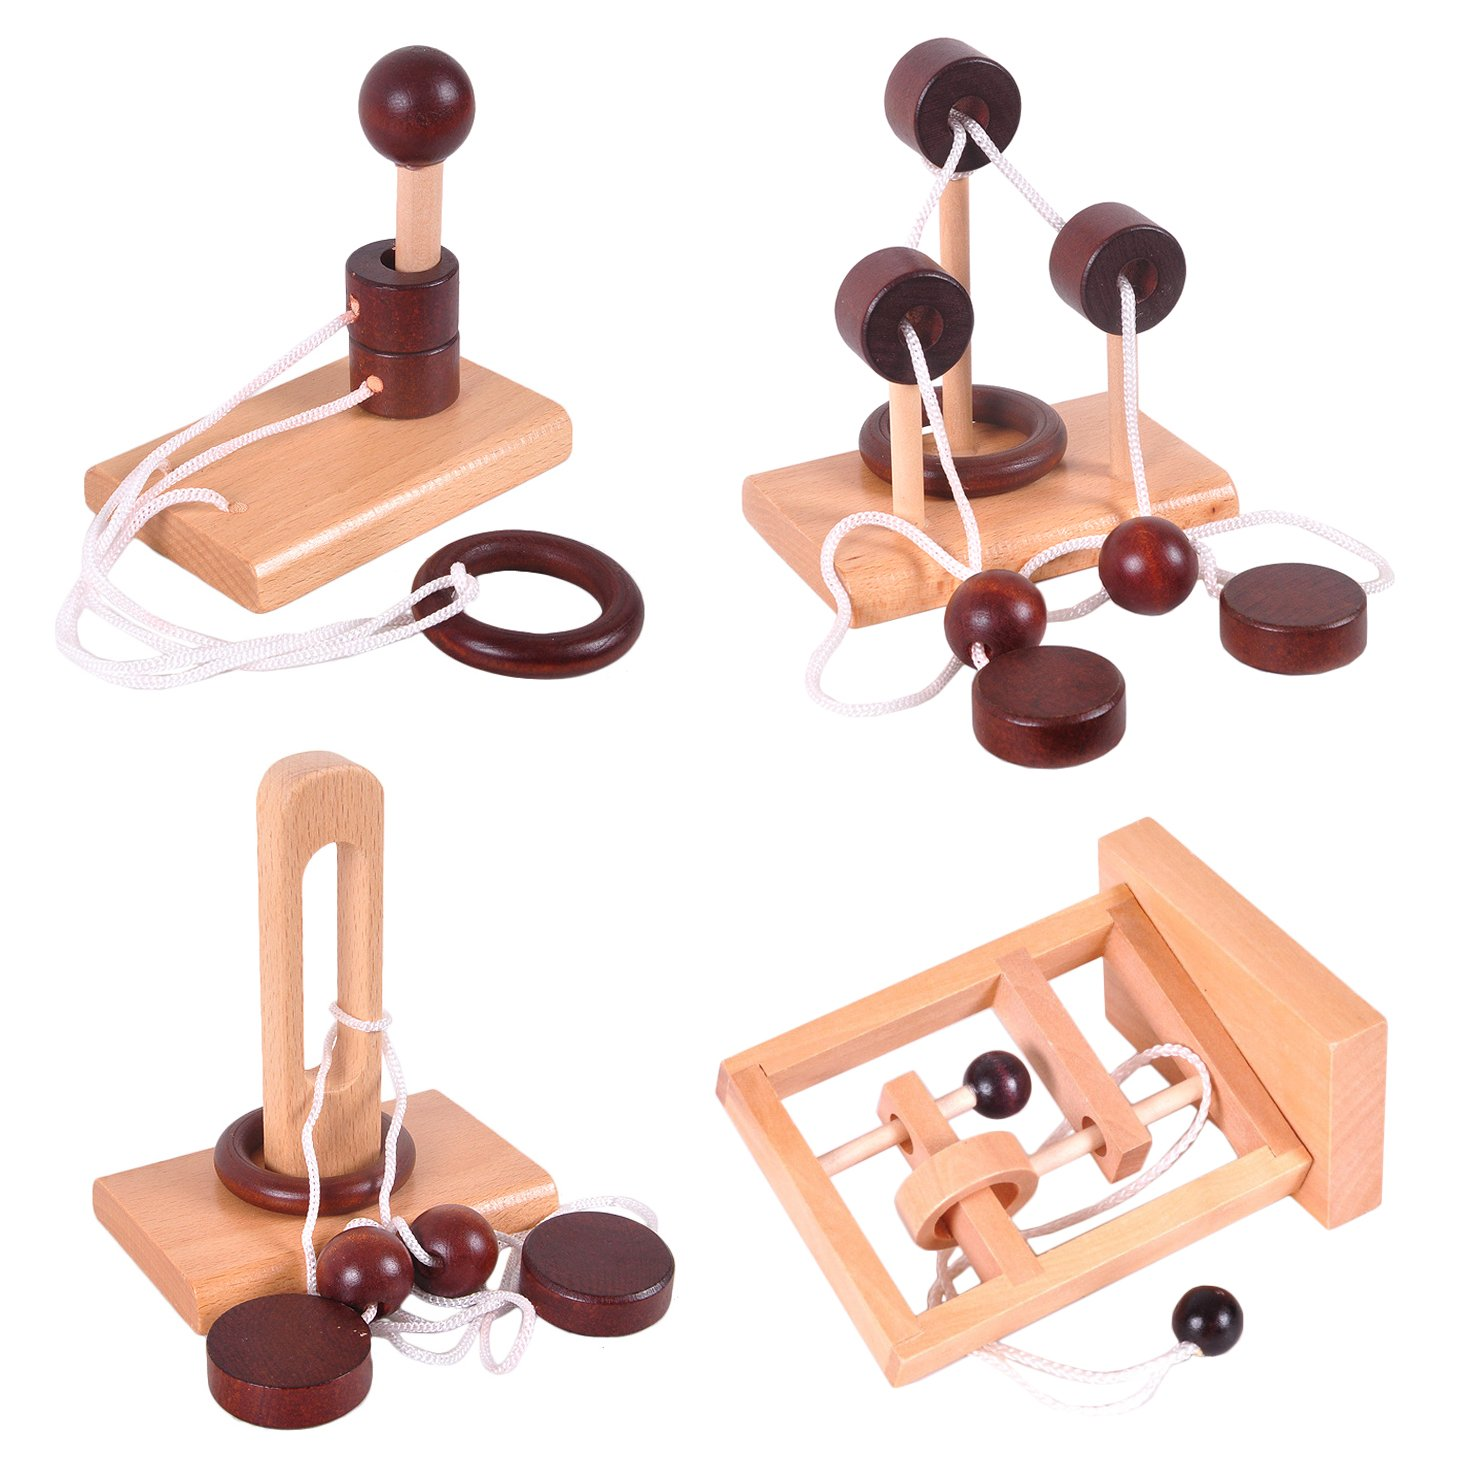 KINGOU 4 Pack Classic Wooden Rope Puzzle Set Ring Puzzles String Solution Central Brain Teaser for Adults/Kids Game